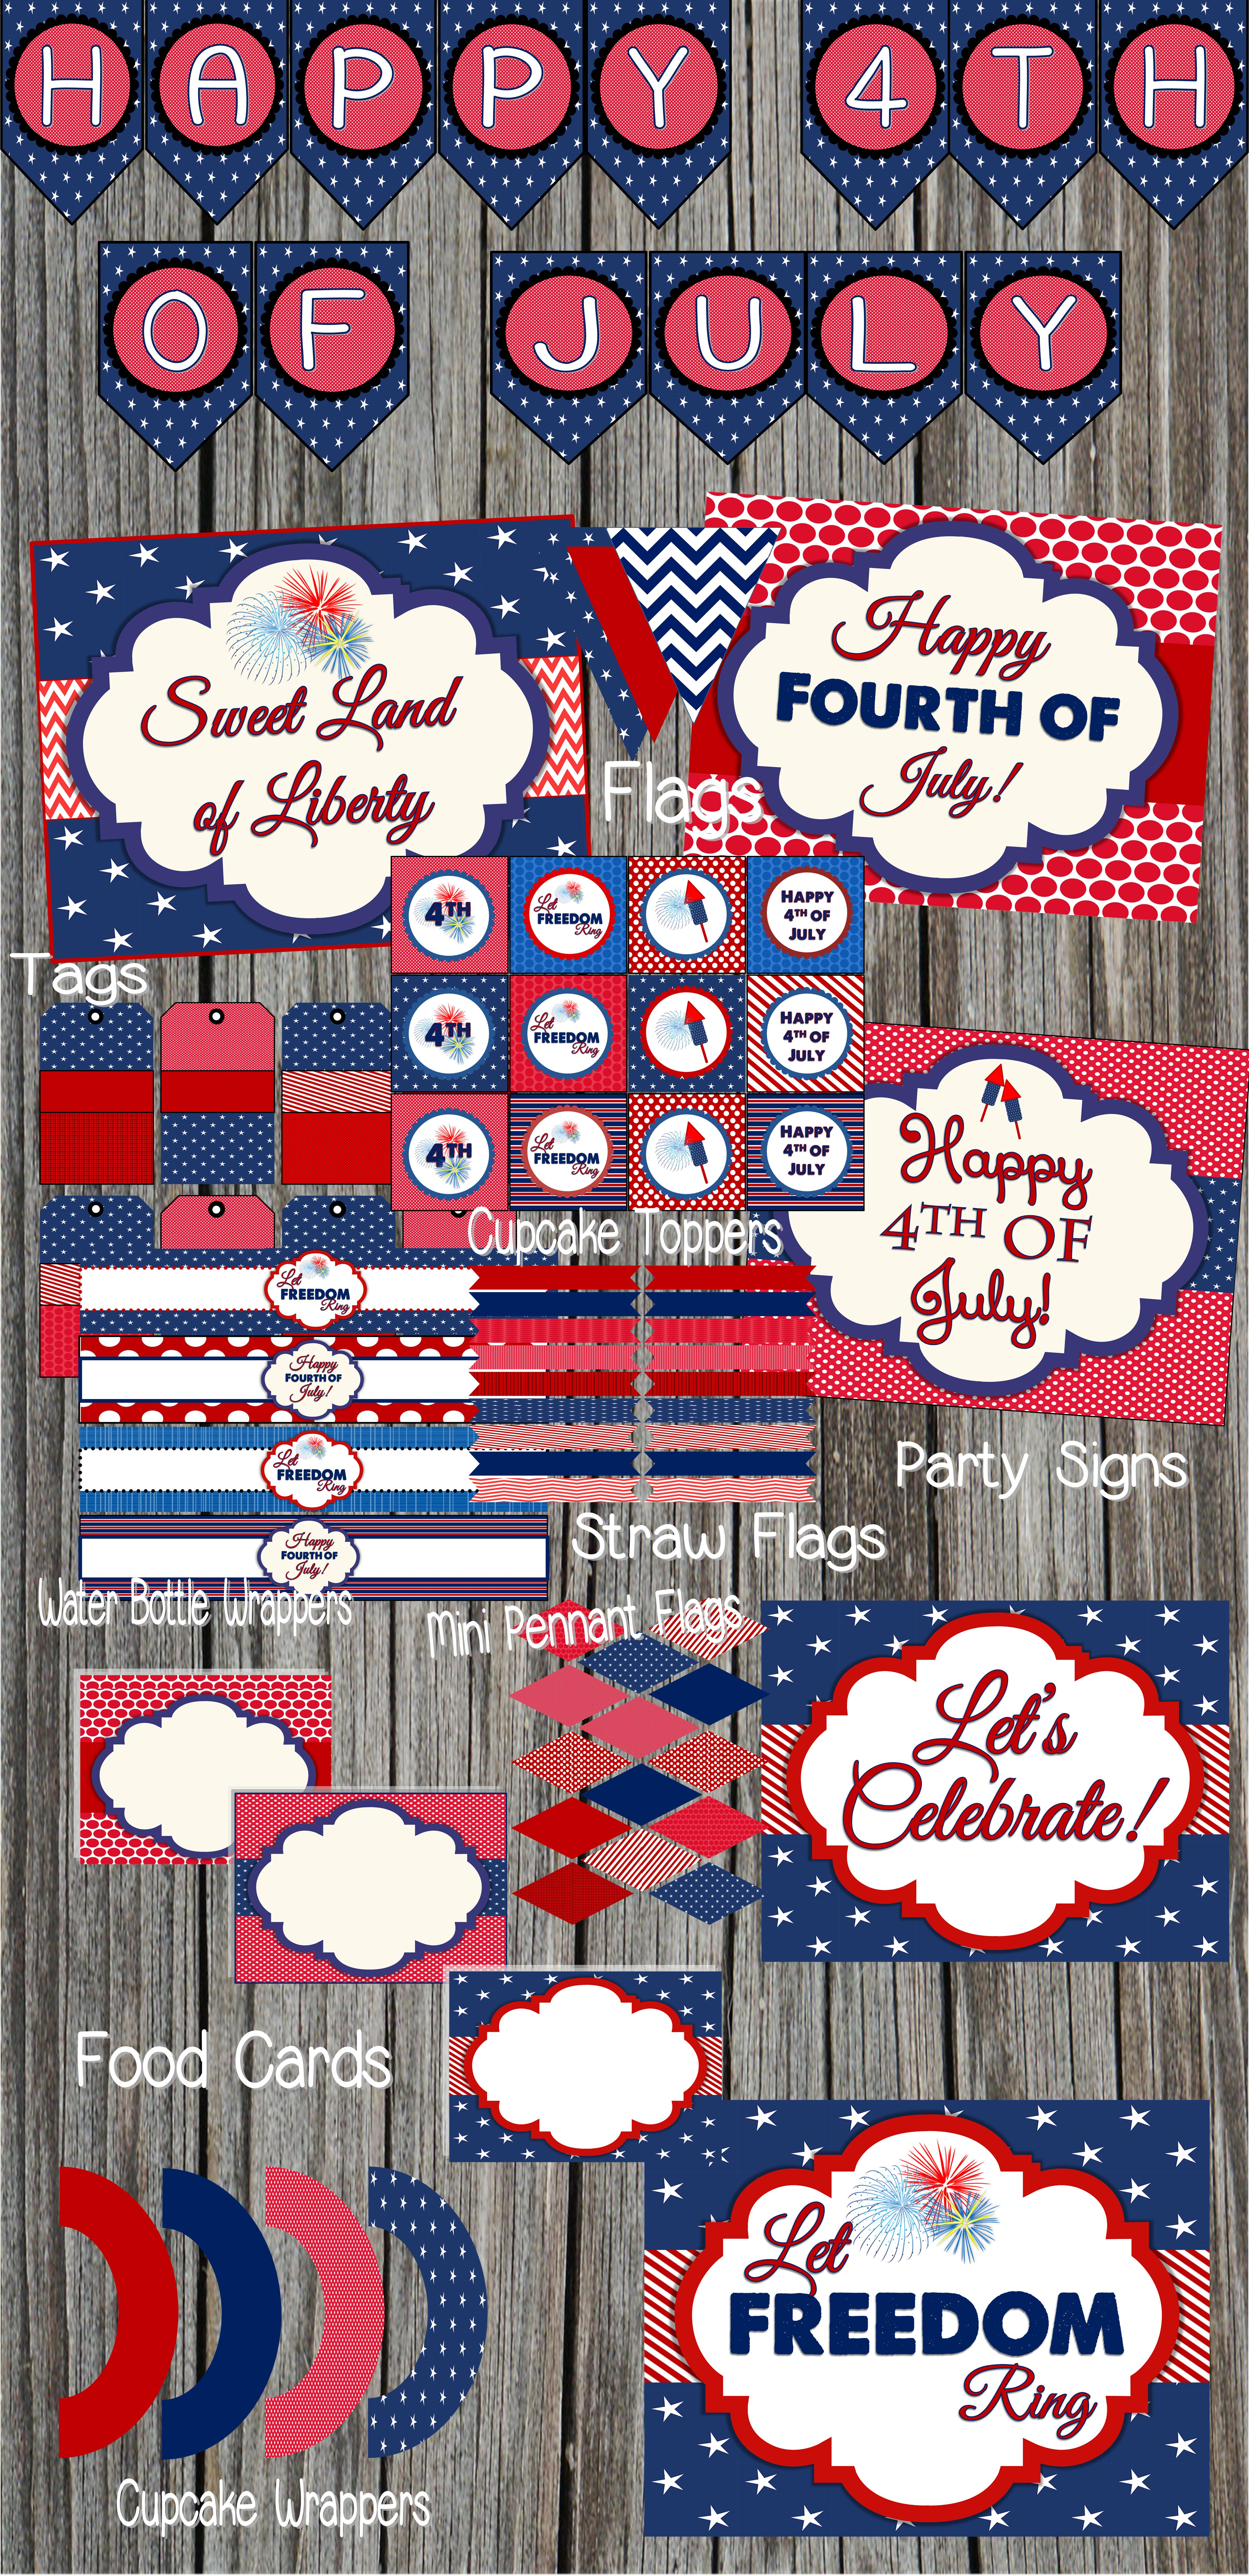 Free 4Th Of July Party Printablesdesignsserendipity | Catch - Free 4Th Of July Printables